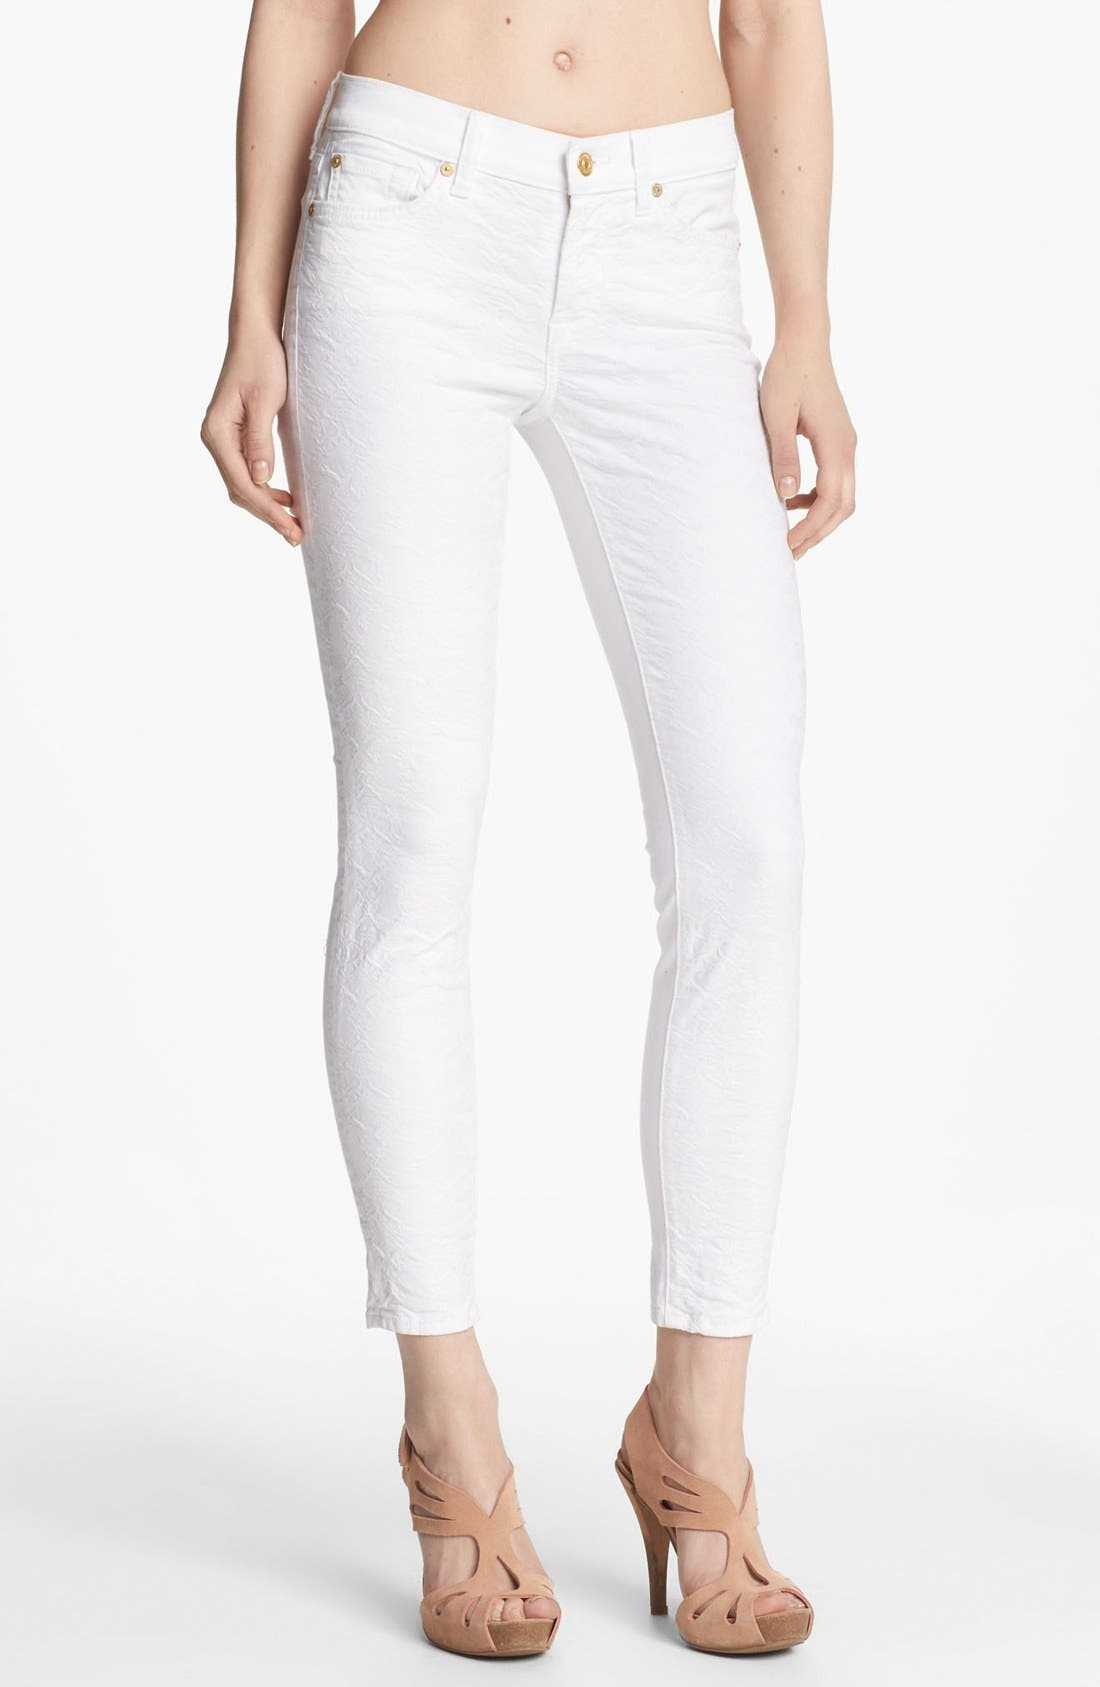 Alternate Image 1 Selected - 7 For All Mankind® Jacquard Crop Skinny Jeans (White)